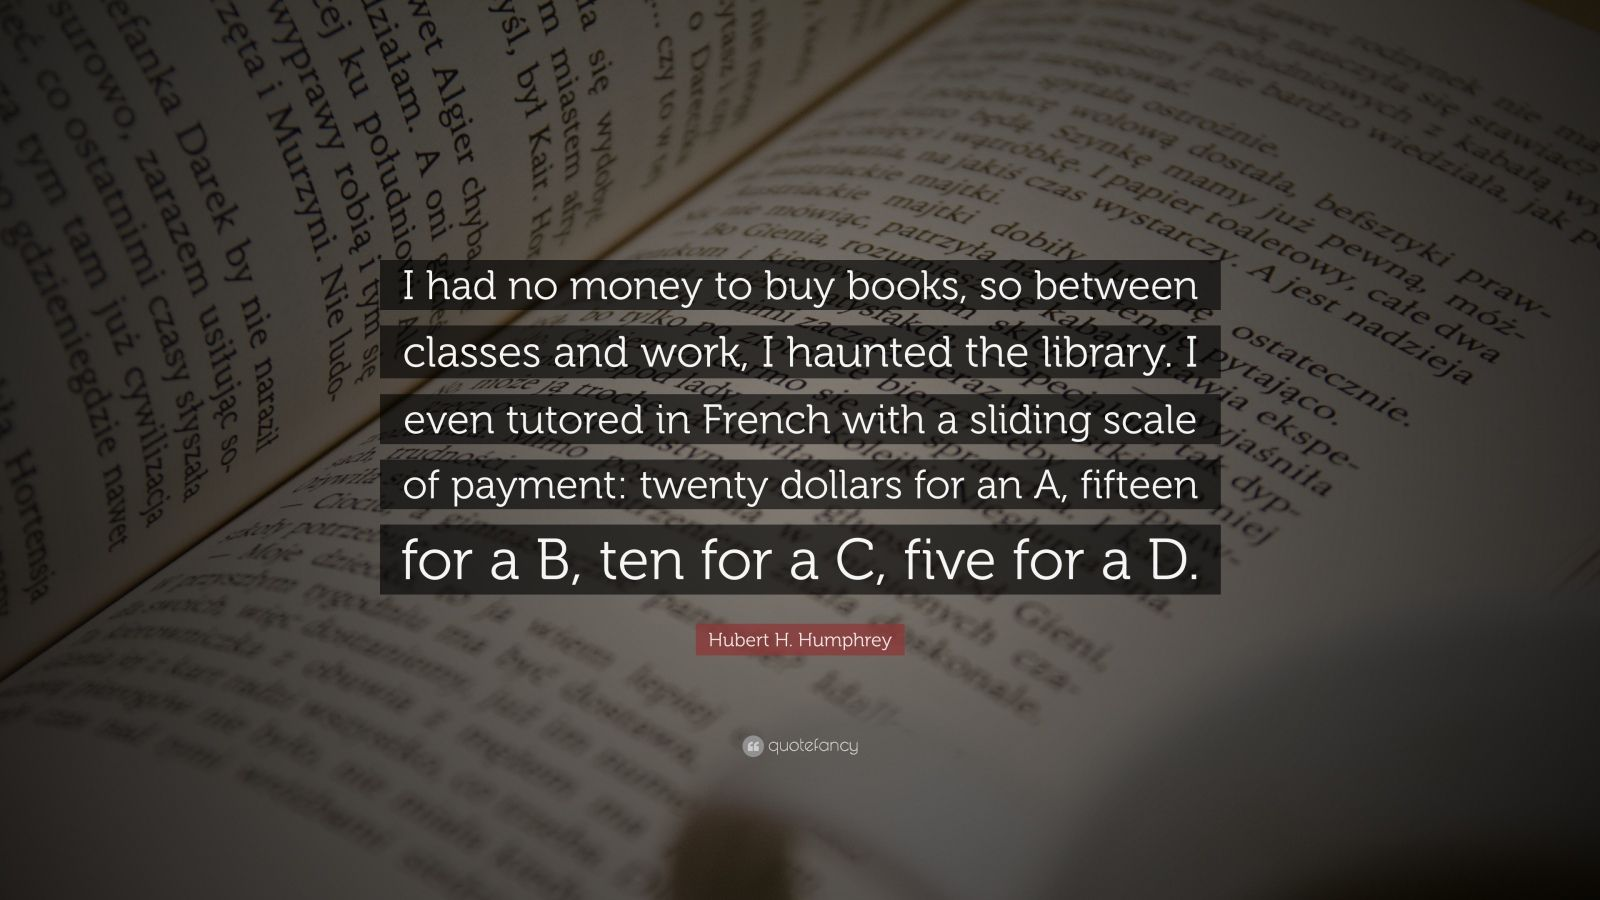 """Hubert H. Humphrey Quote: """"I had no money to buy books, so between classes and work, I haunted the library. I even tutored in French with a sliding scale of payment: twenty dollars for an A, fifteen for a B, ten for a C, five for a D."""""""